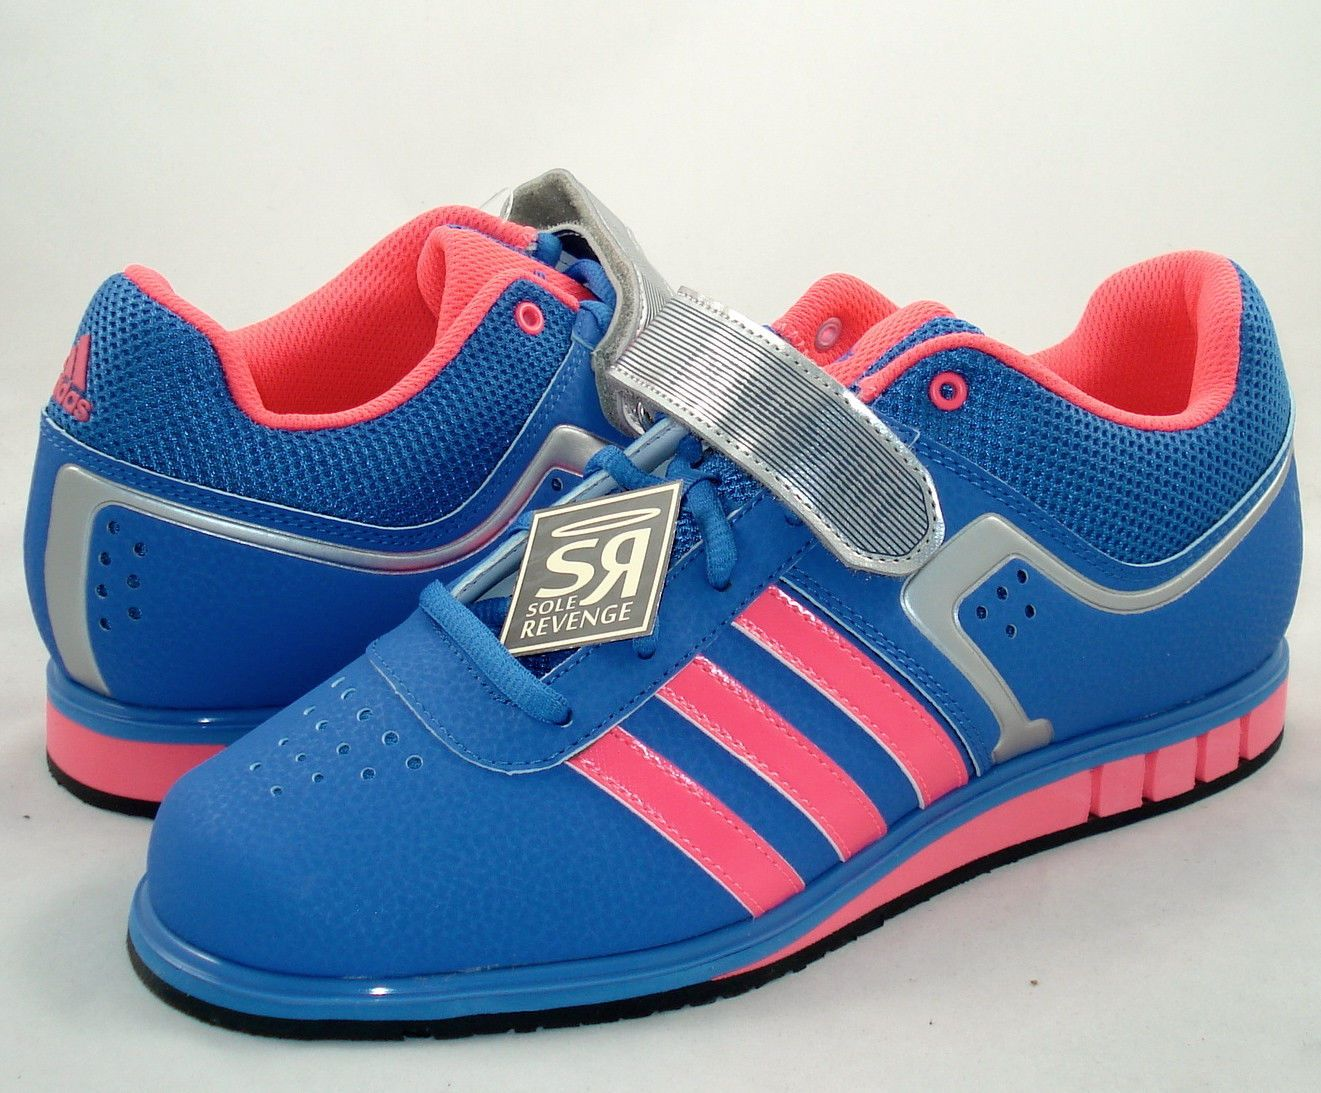 Adidas New Powerlift 2 Weightlifting Shoes Red Zest Blue